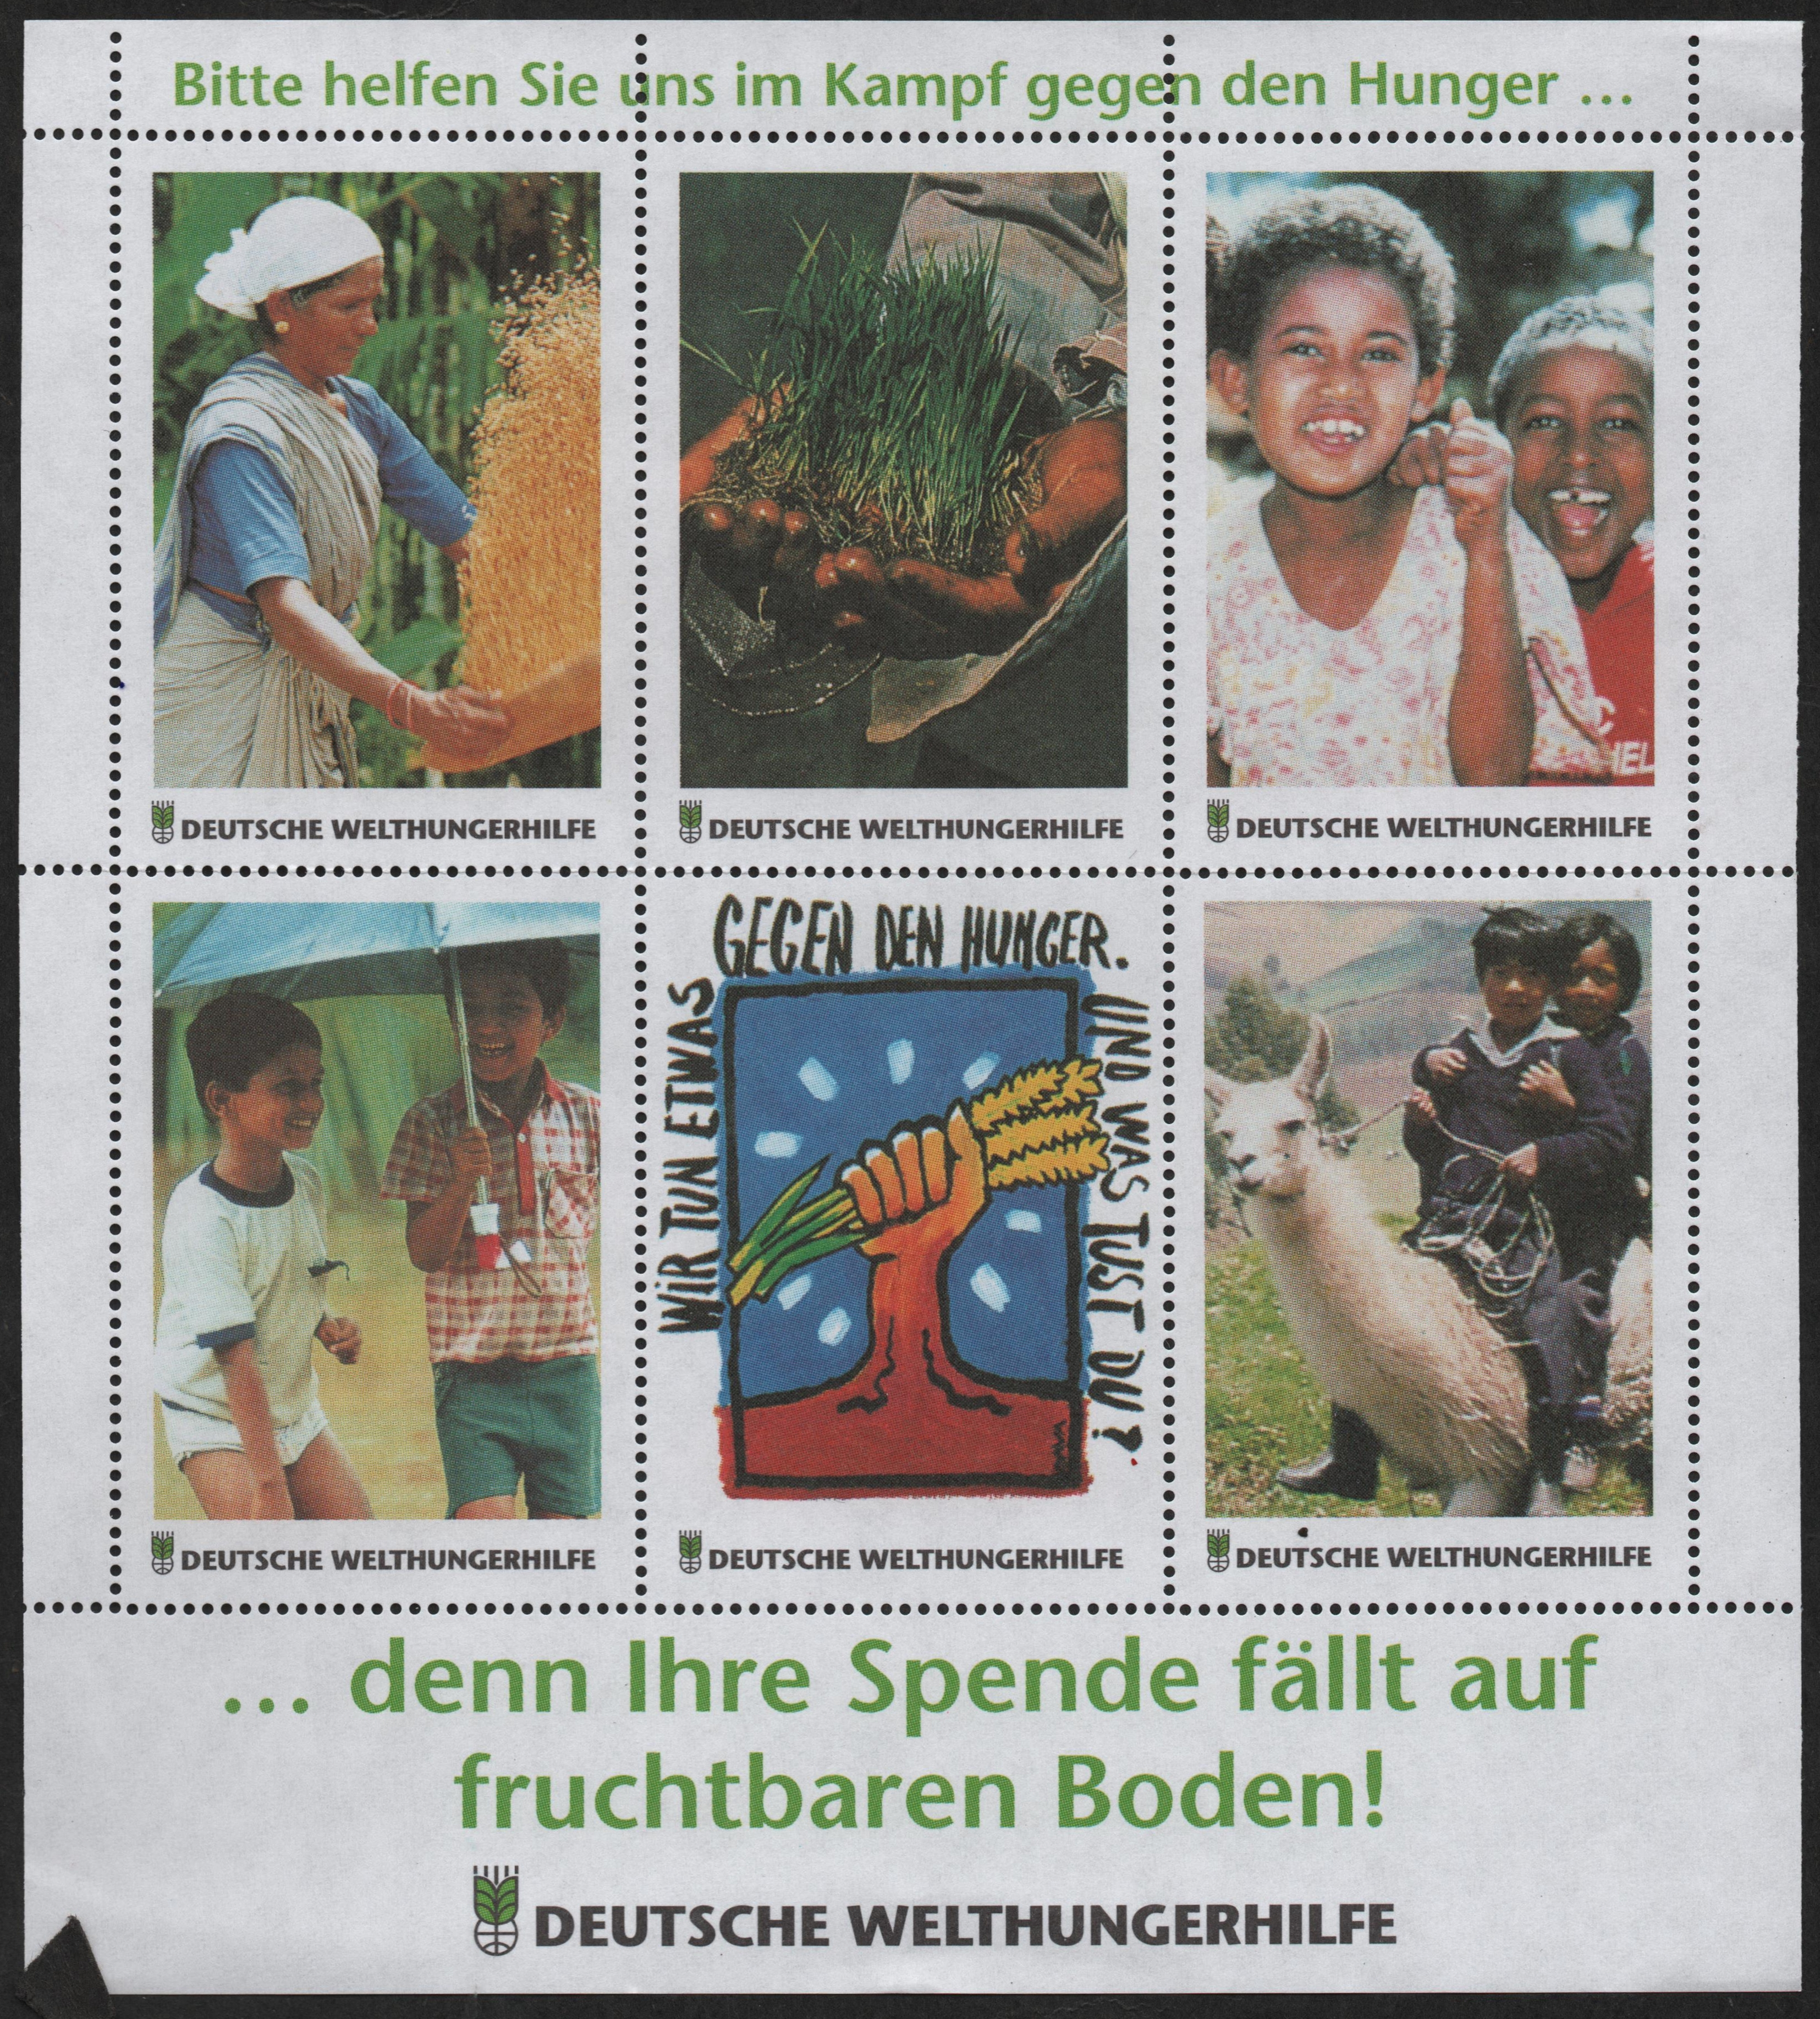 Charity seals distributed by Deutsche Welthungerhilfe to campaign against hunger. The German inscription translates to